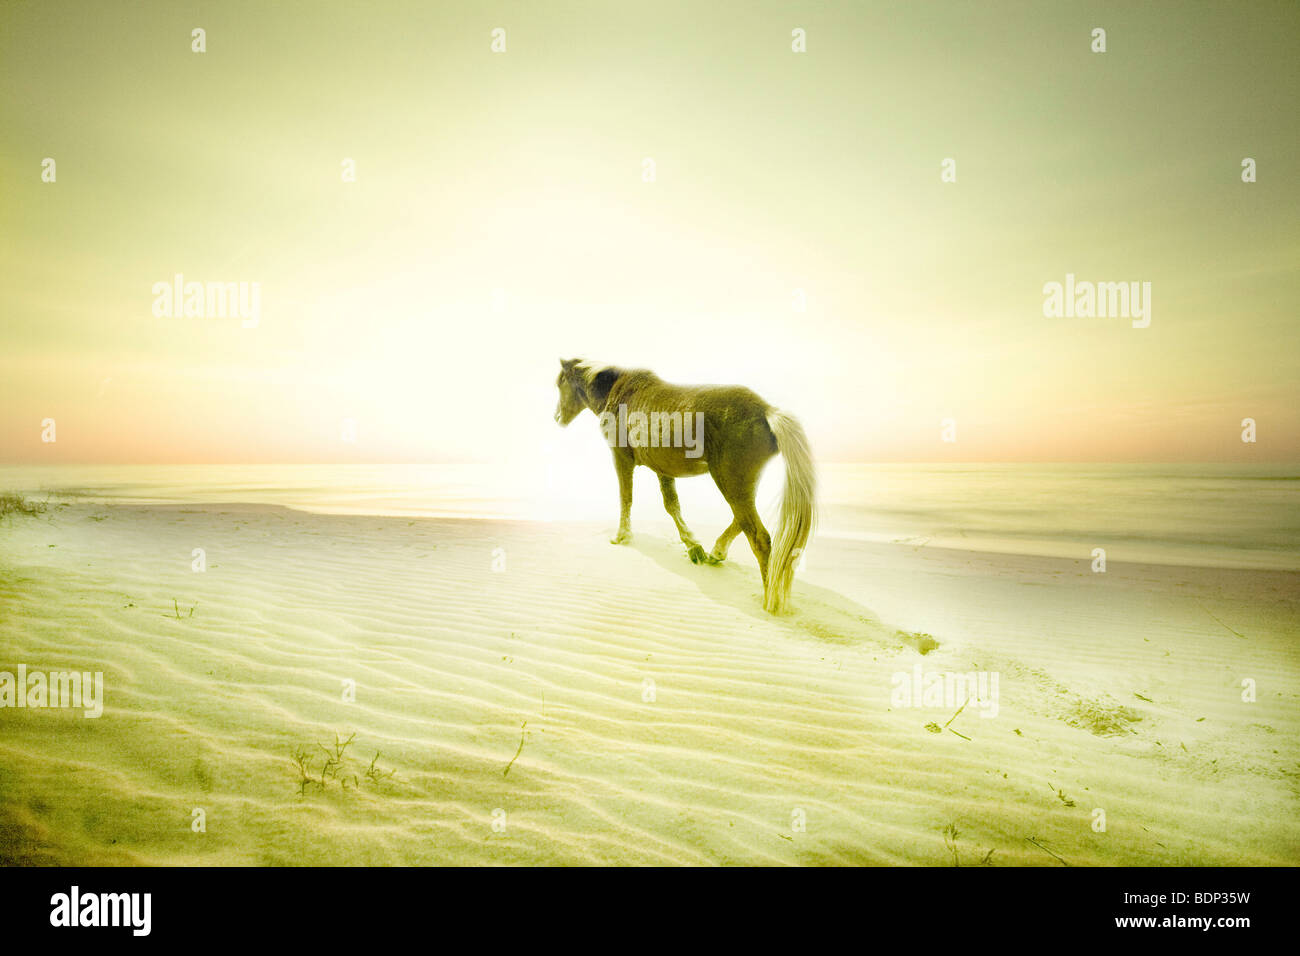 A pony on a sandy beach Stock Photo